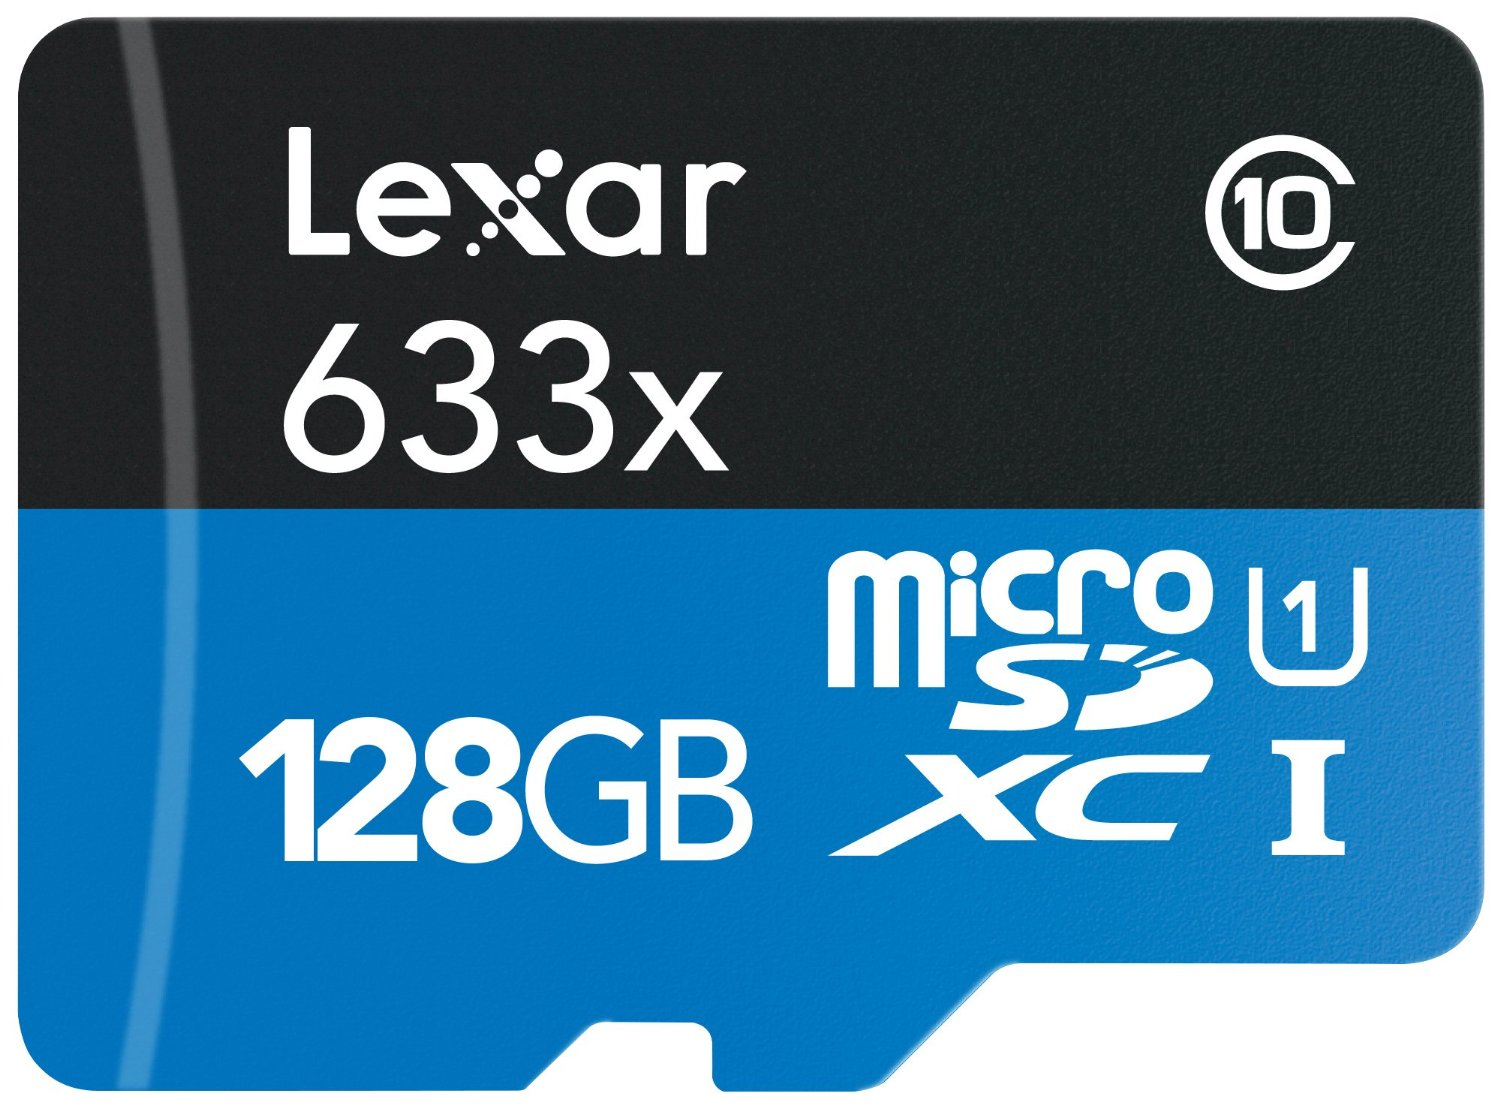 [Deal Alert] Lexar's 128GB High-Performance MicroSDXC Card On Sale For $59.99, Its Lowest Price Ever